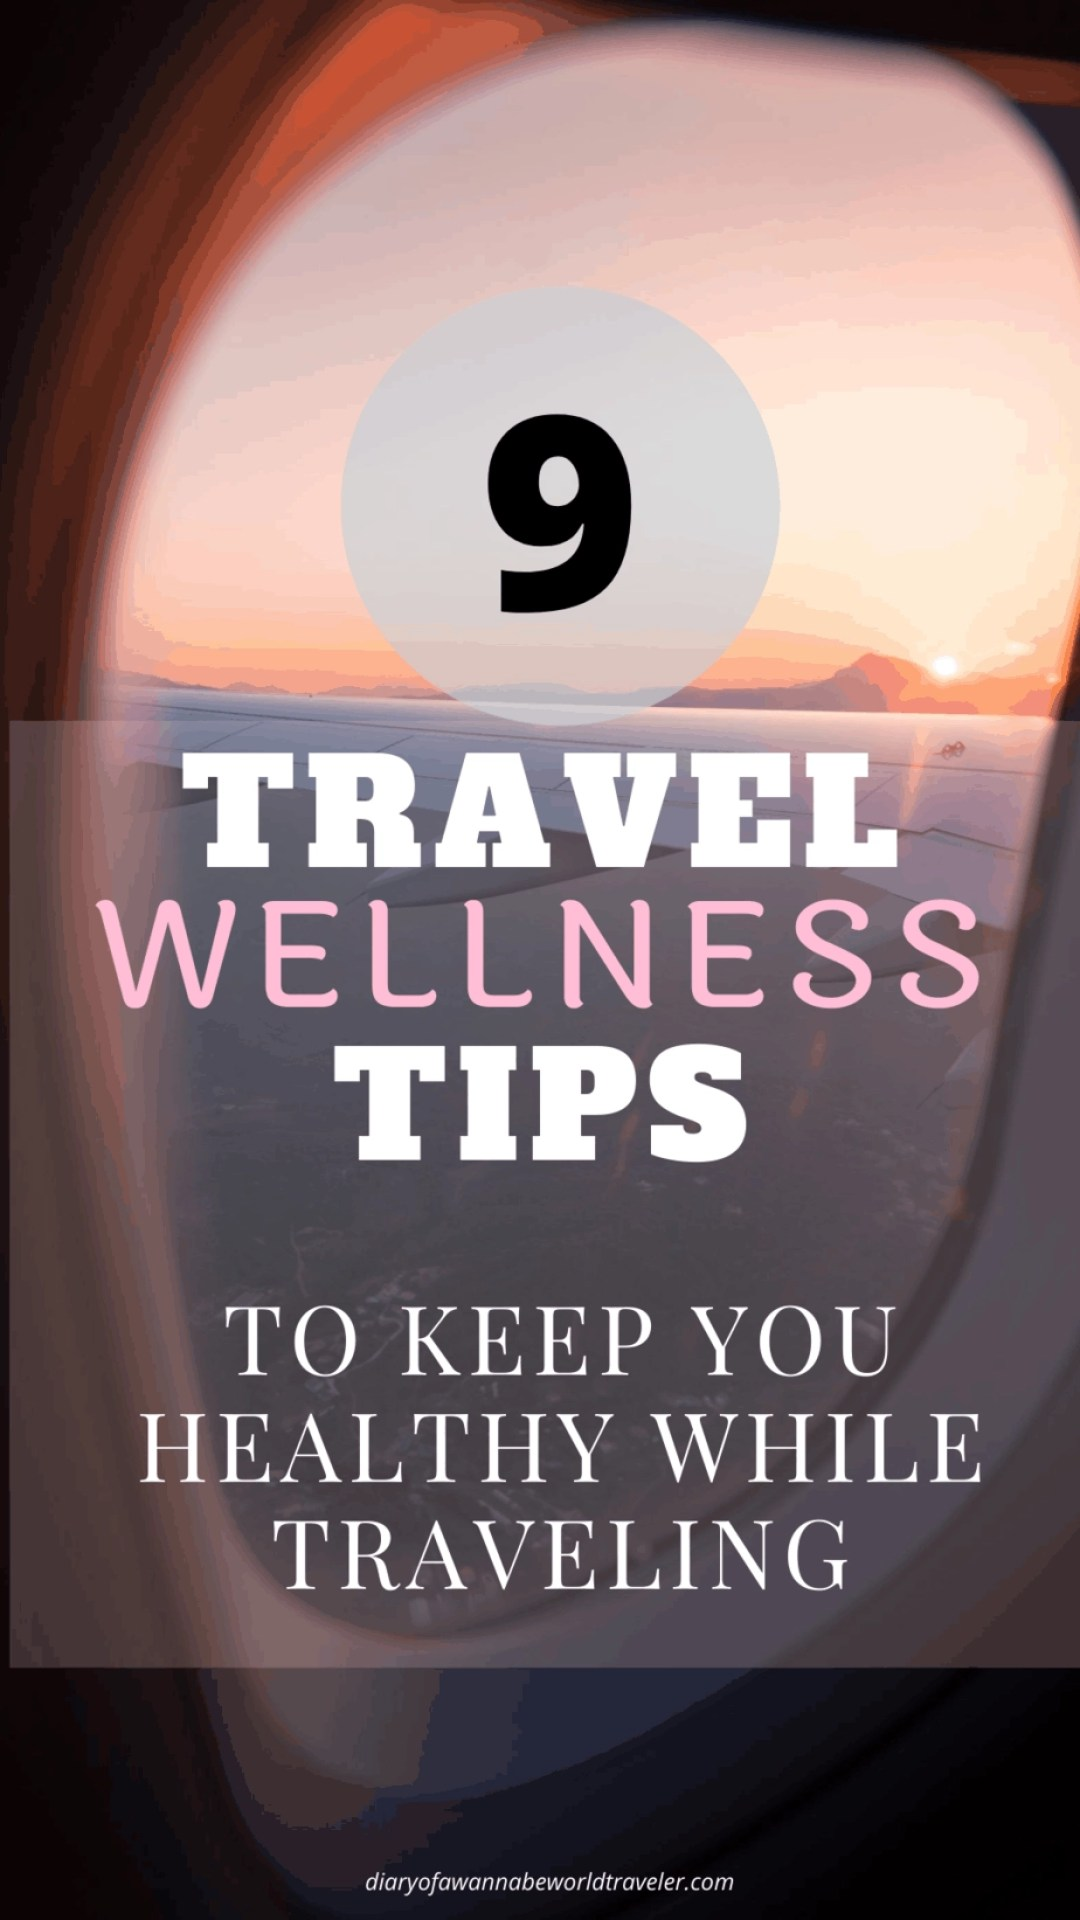 Travel wellness tips pin